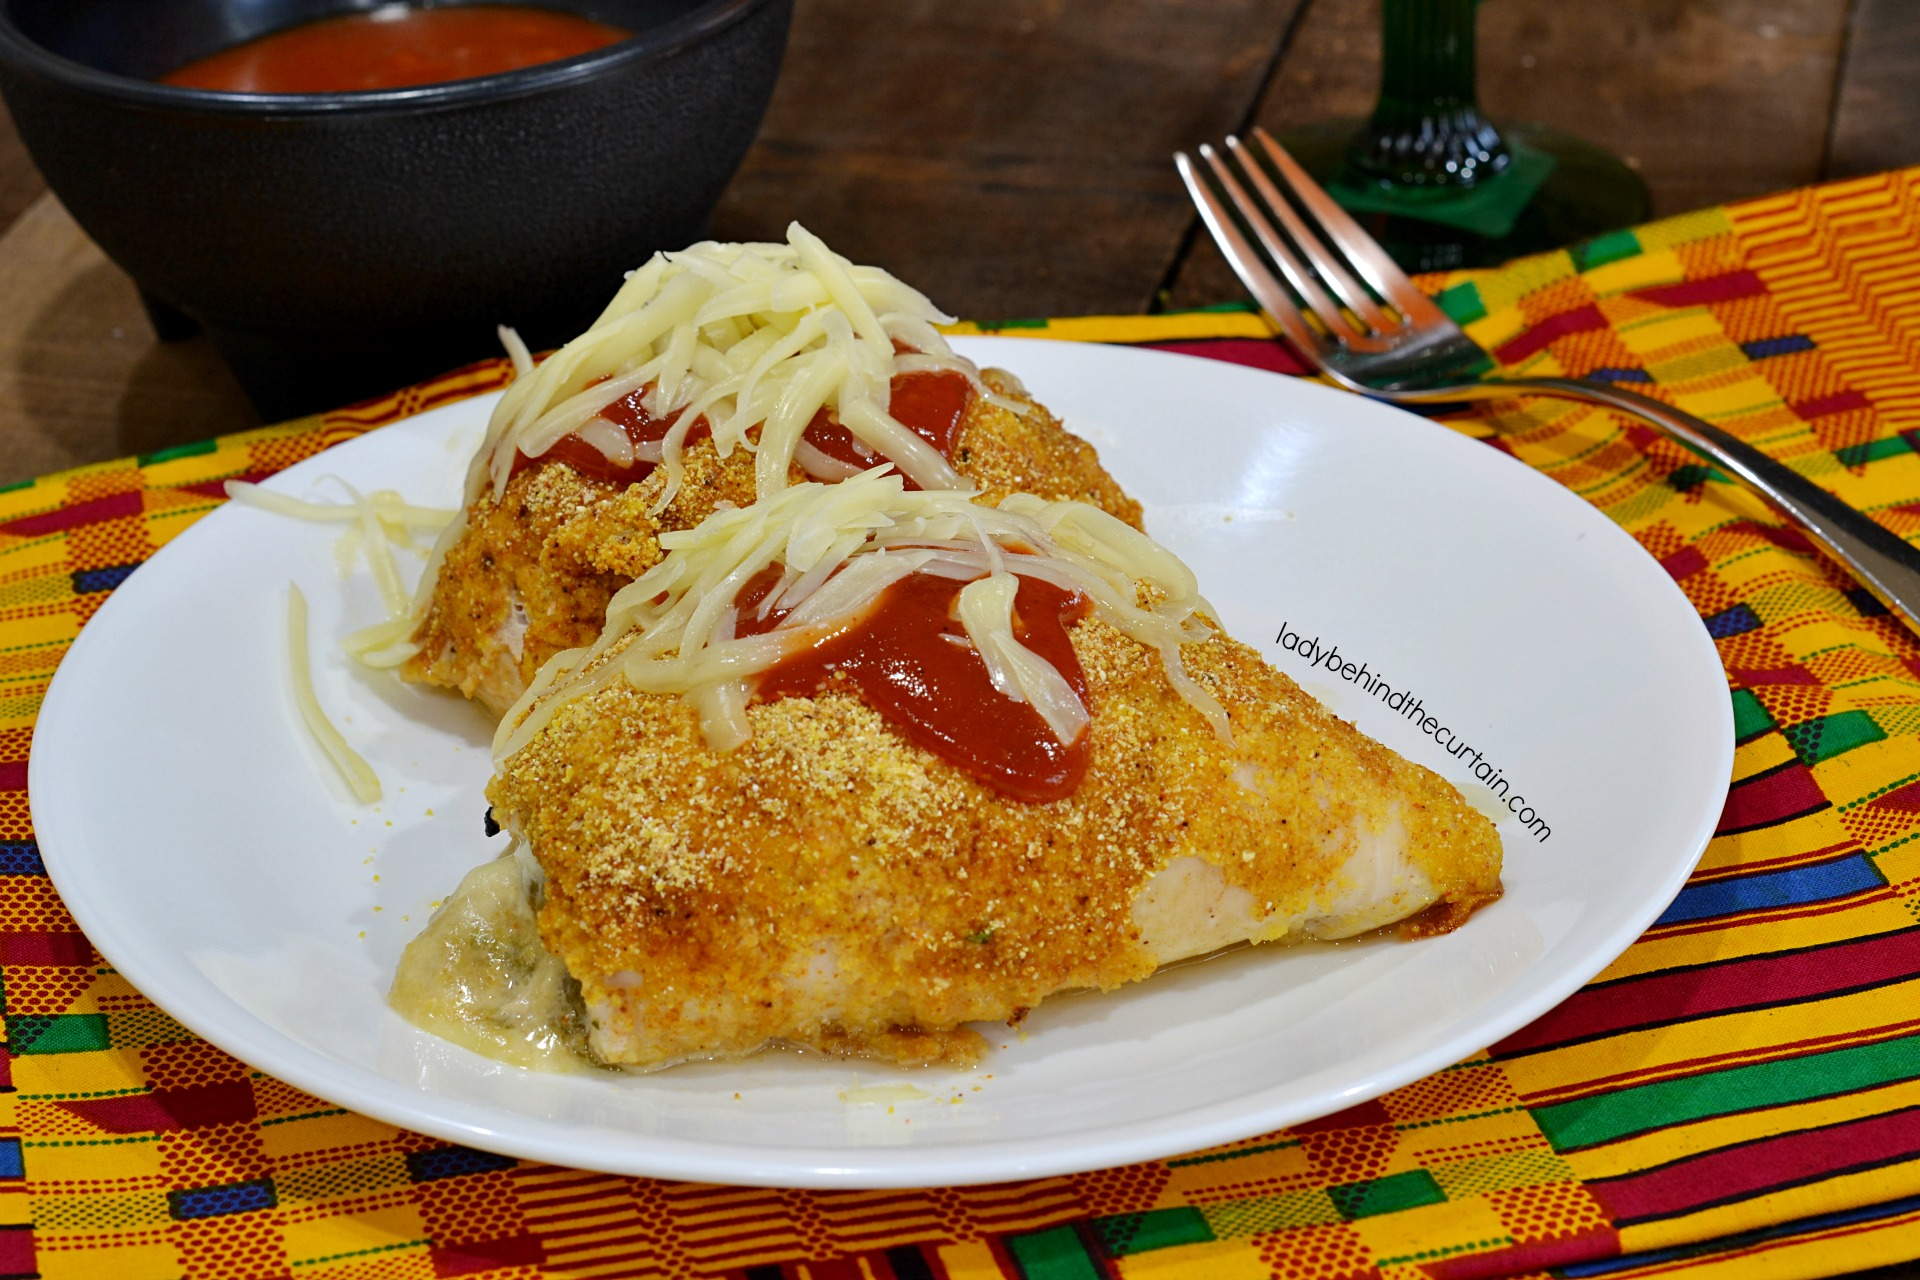 Baked Chicken Chili Relleno